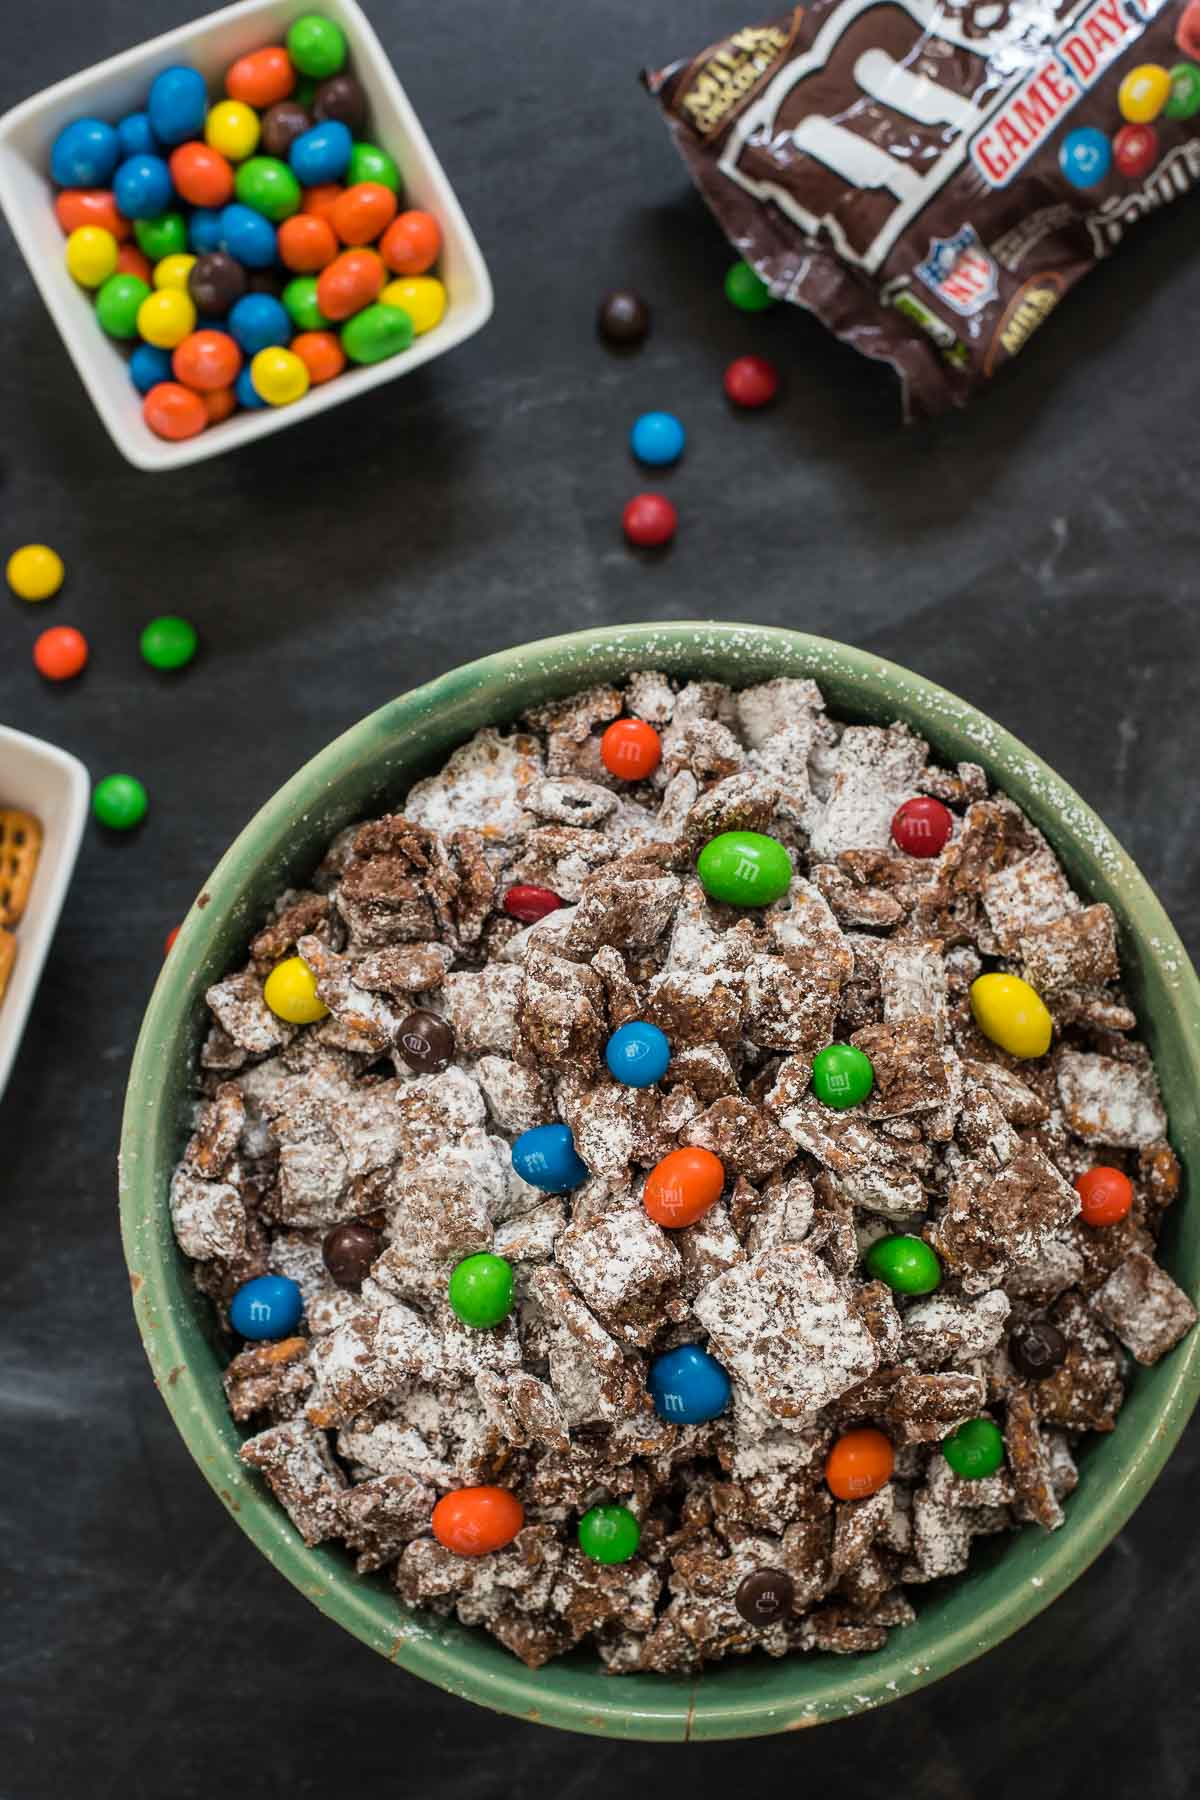 This Chocolate Peanut Butter Puppy Chow is an easy no bake appetizer that always disappears at parties!